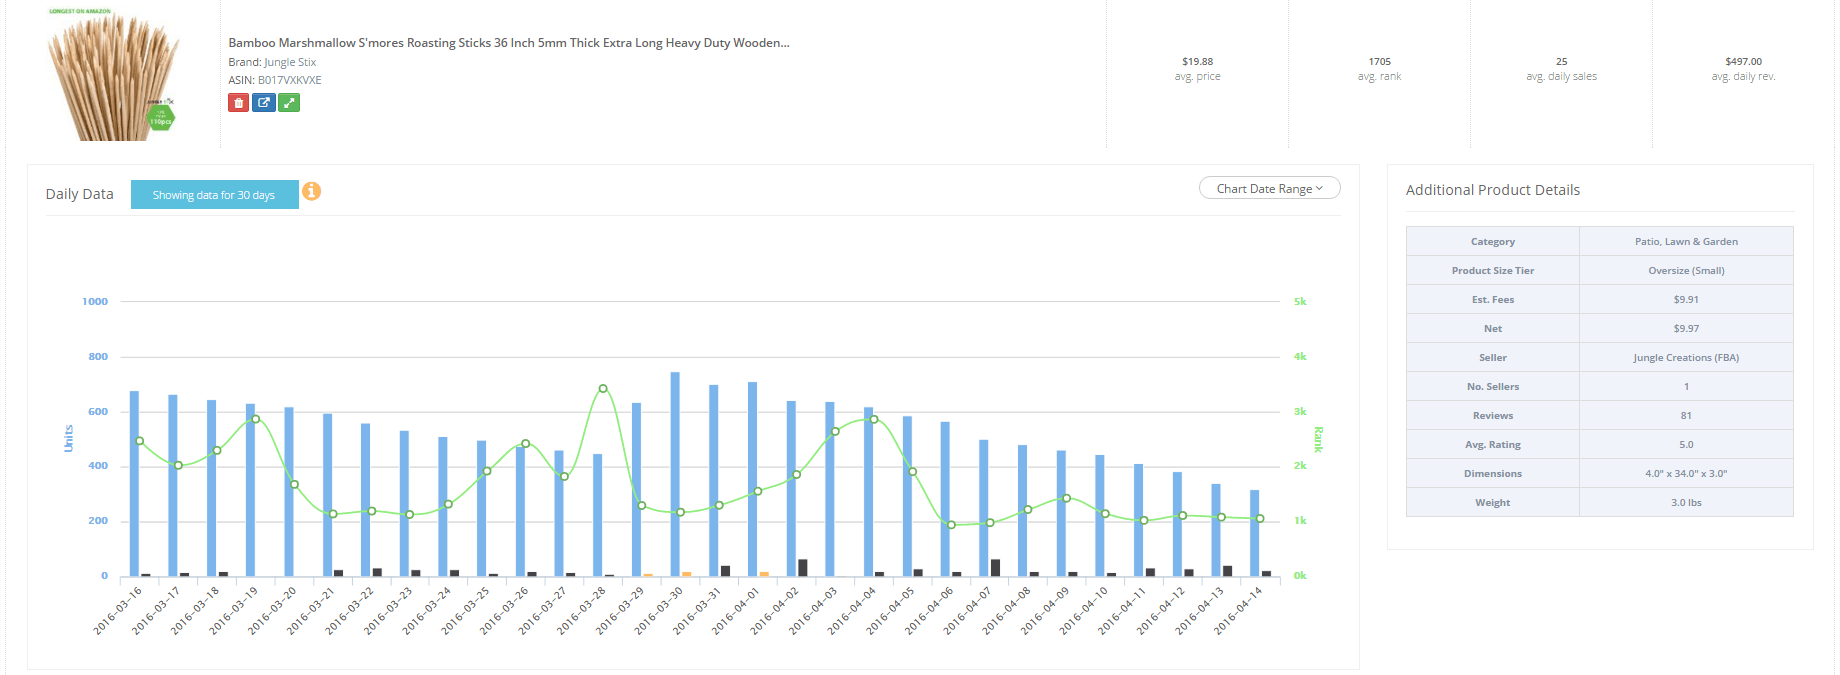 jungle_stix_30_day_data_from_product_tracker